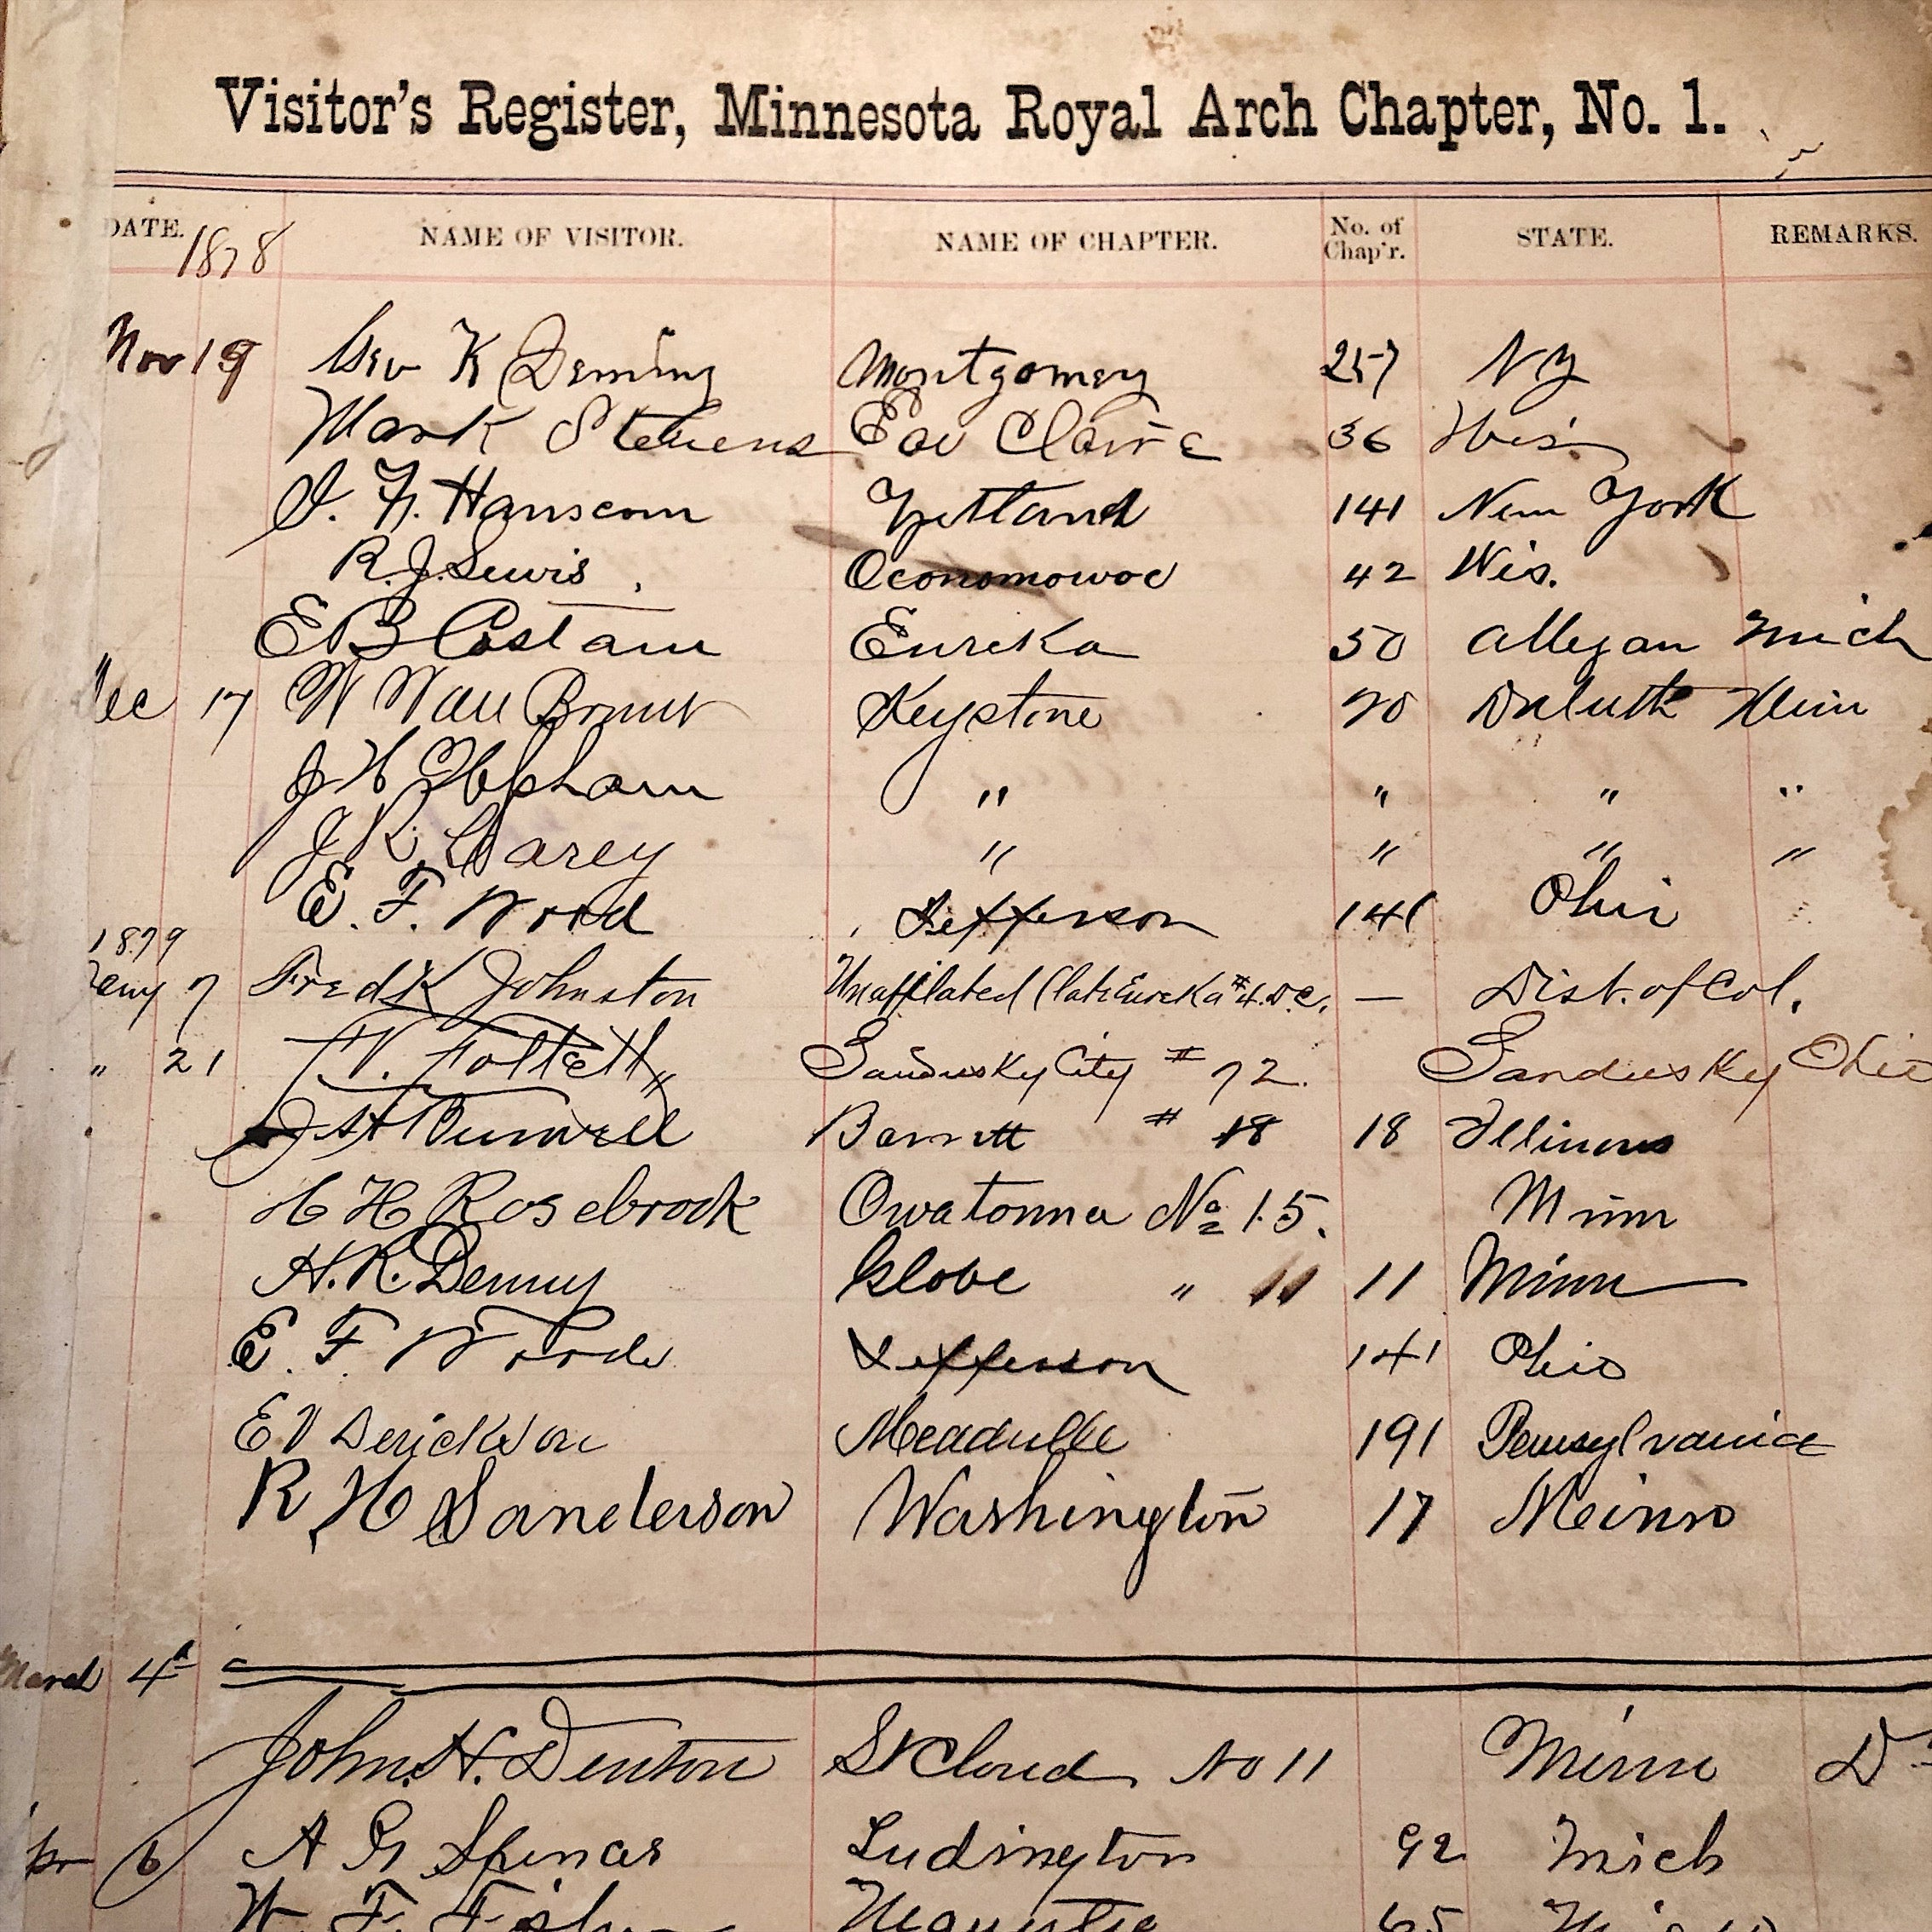 Antique Free Masons Register Book from 19th Century - Minnesota Royal Arch - 1878 - 1951 - Masonic Lodge Memorabilia